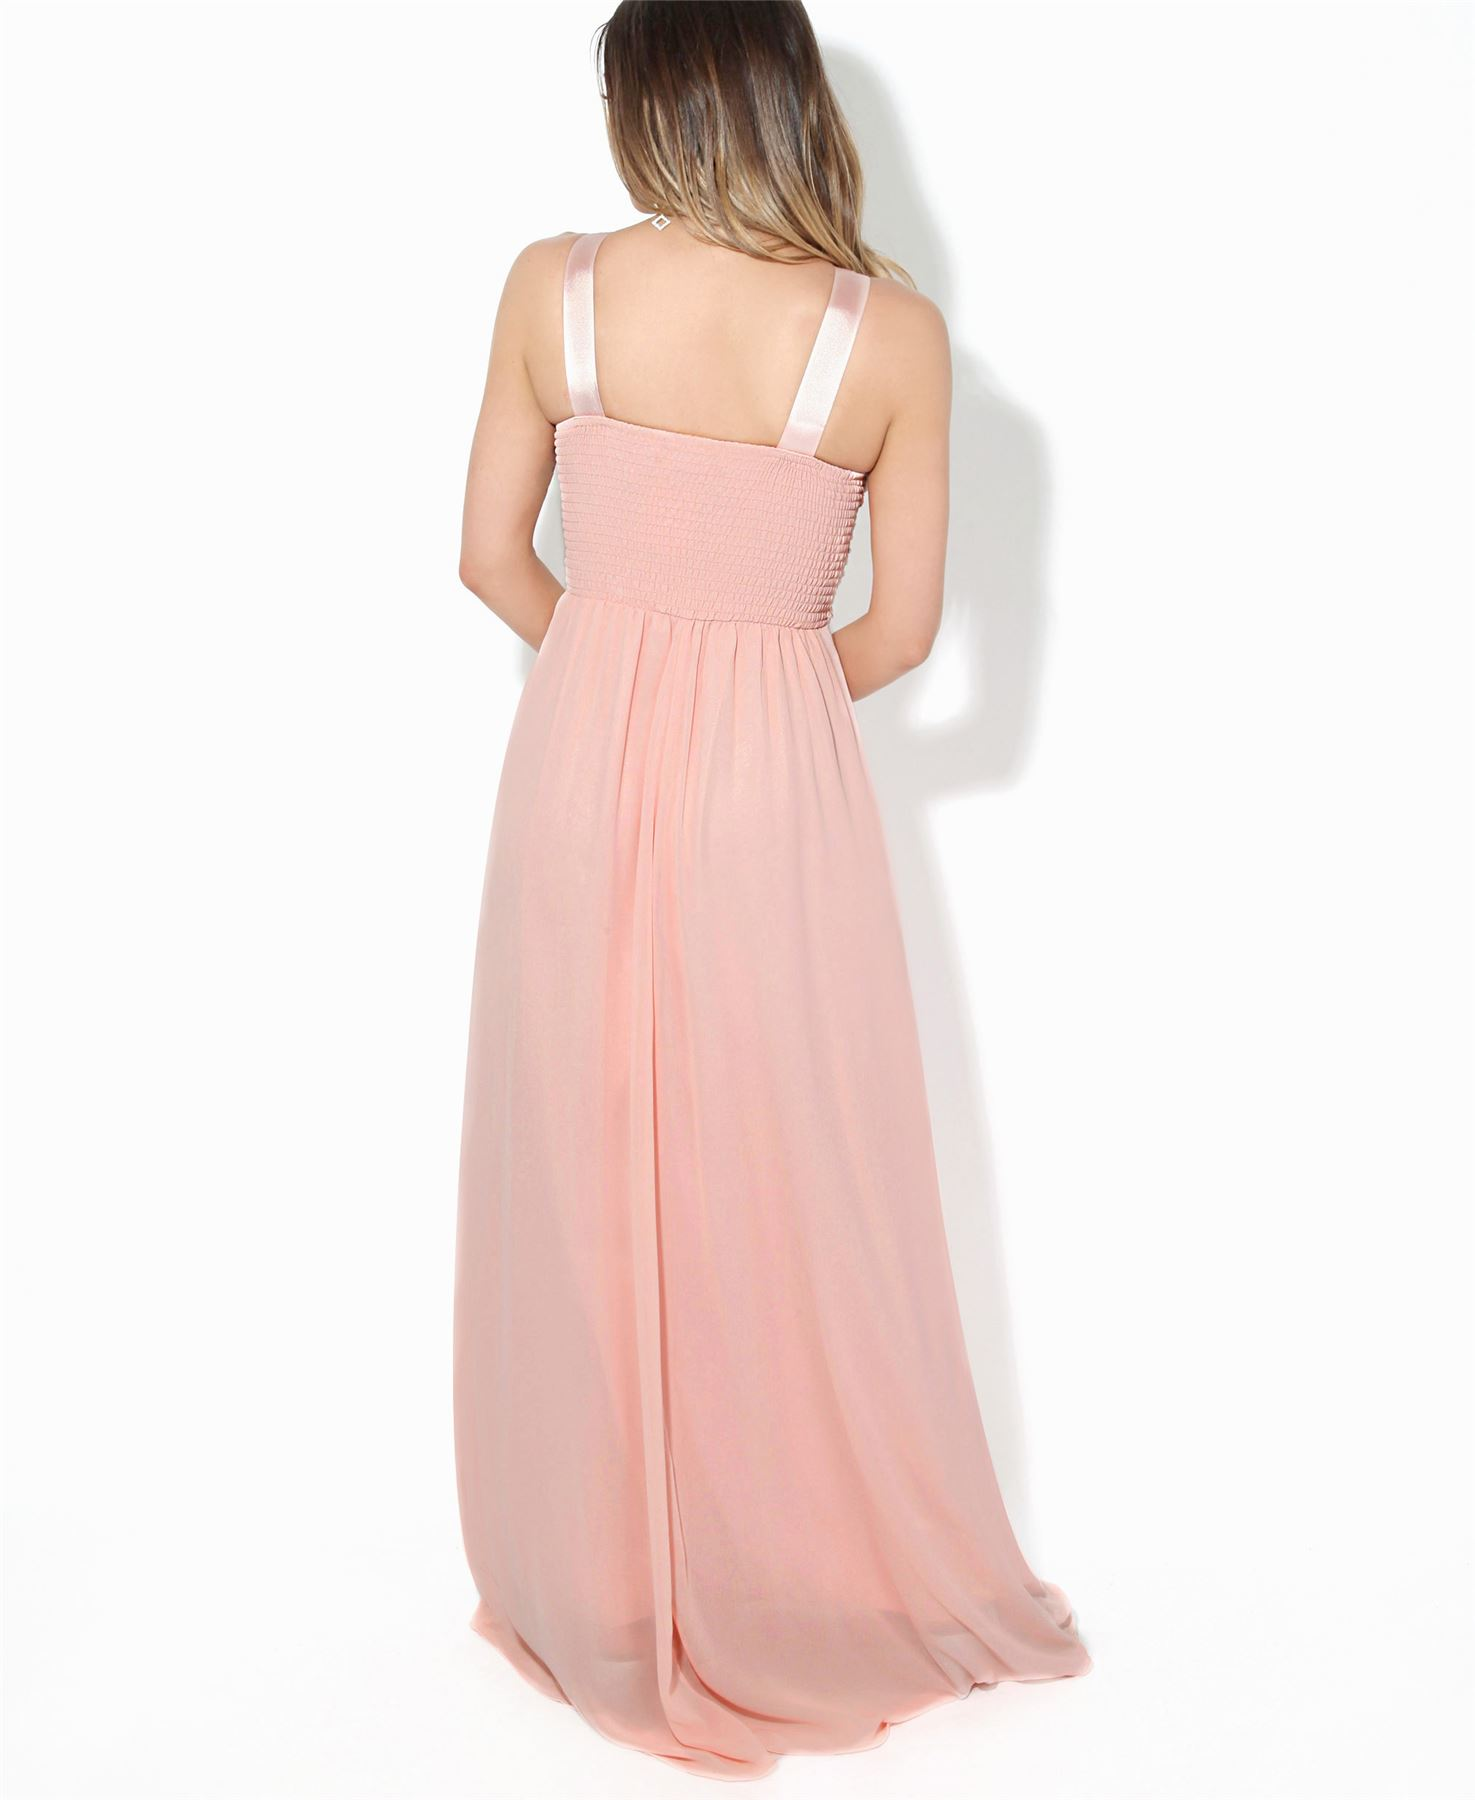 Women-Formal-Diamante-Wedding-Cocktail-Dress-Long-Ball-Gown-Prom-Maxi-Party-8-18 thumbnail 13